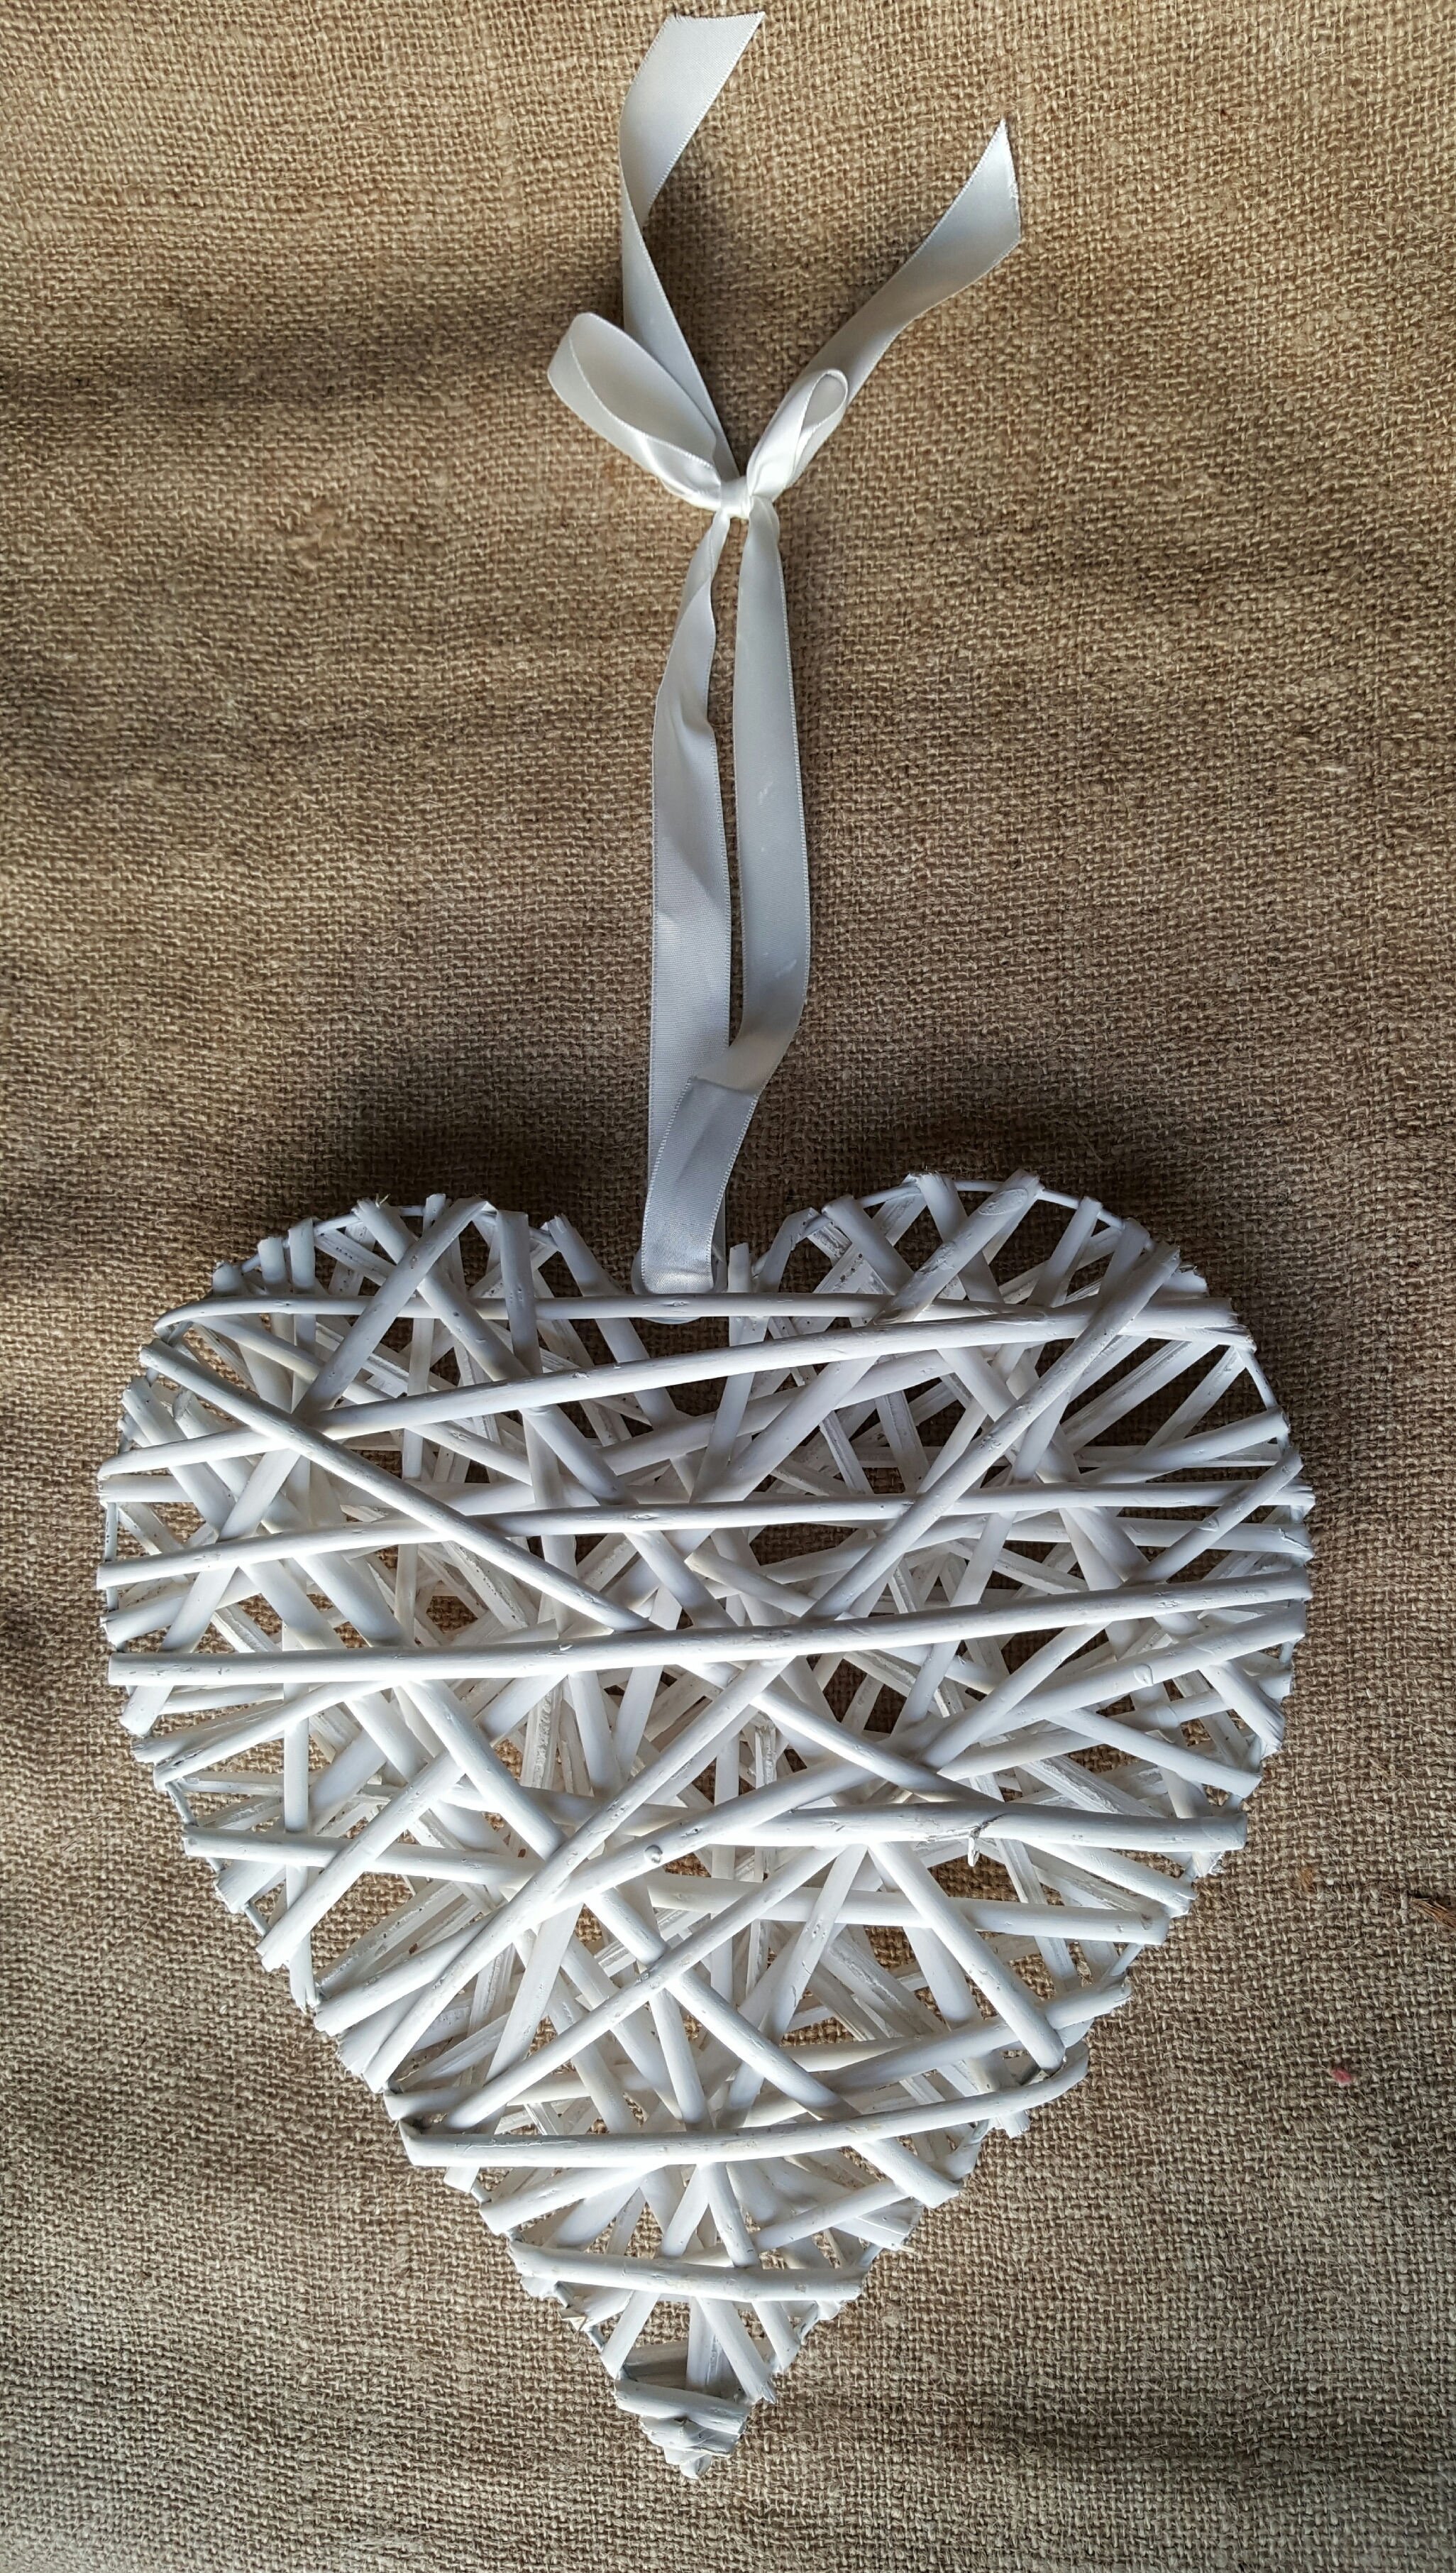 Hollow wicker heart with wooden